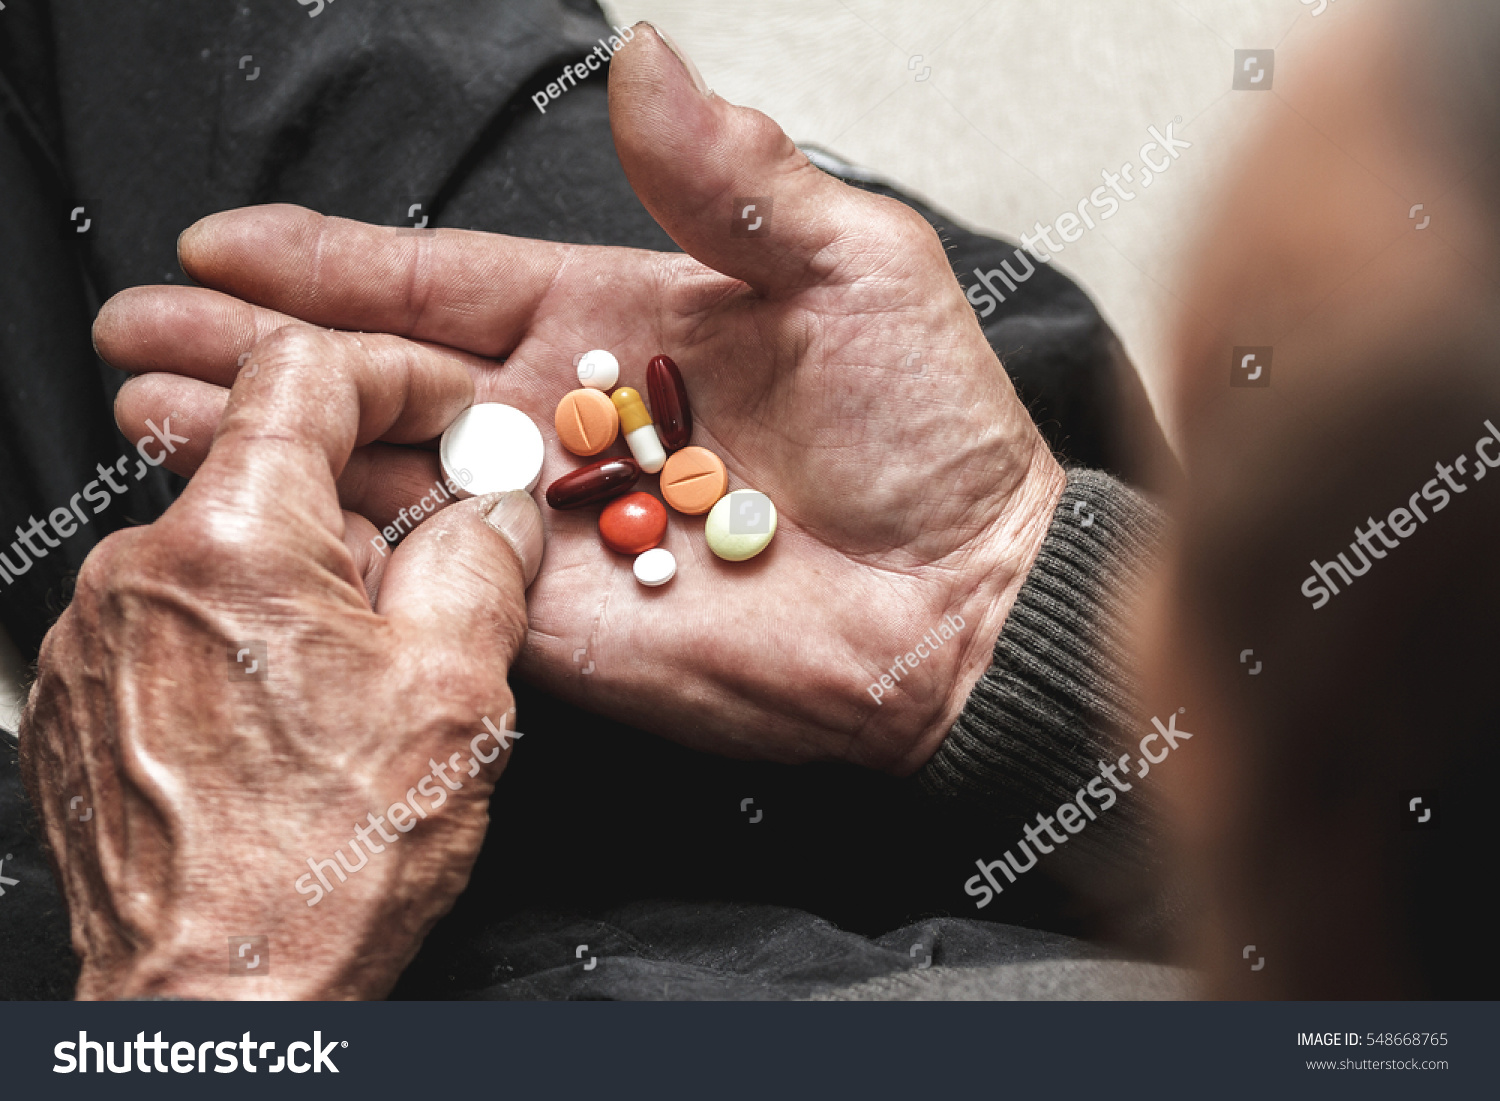 Many multi-colored pills in a Senior's hands Painful old age Caring for the health of the elderly